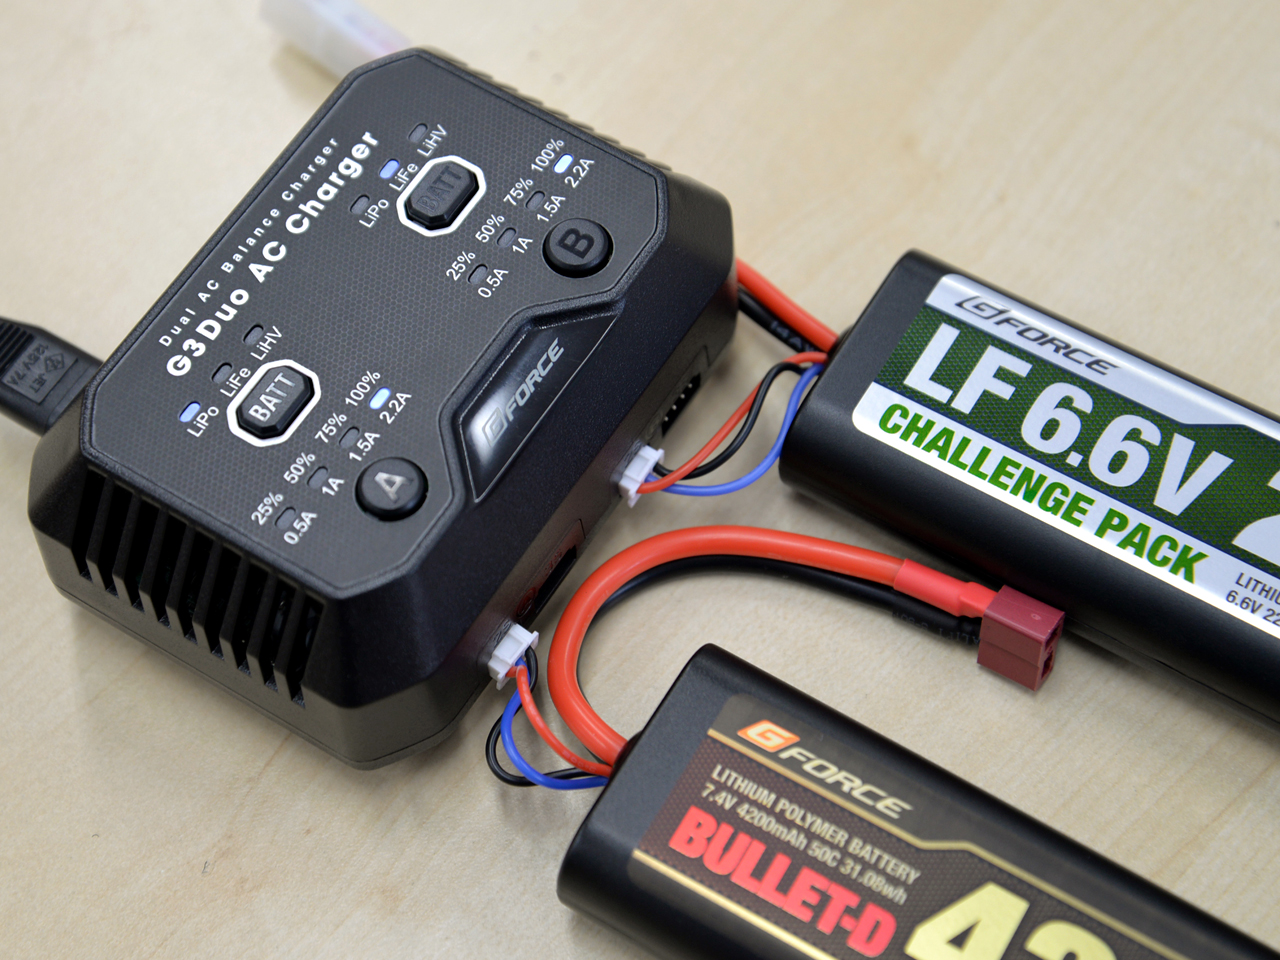 G-FORCE G3 DUO LiPo/LiFe AC専用充電器(2-3セル) G3 DUO CHARGER G0318